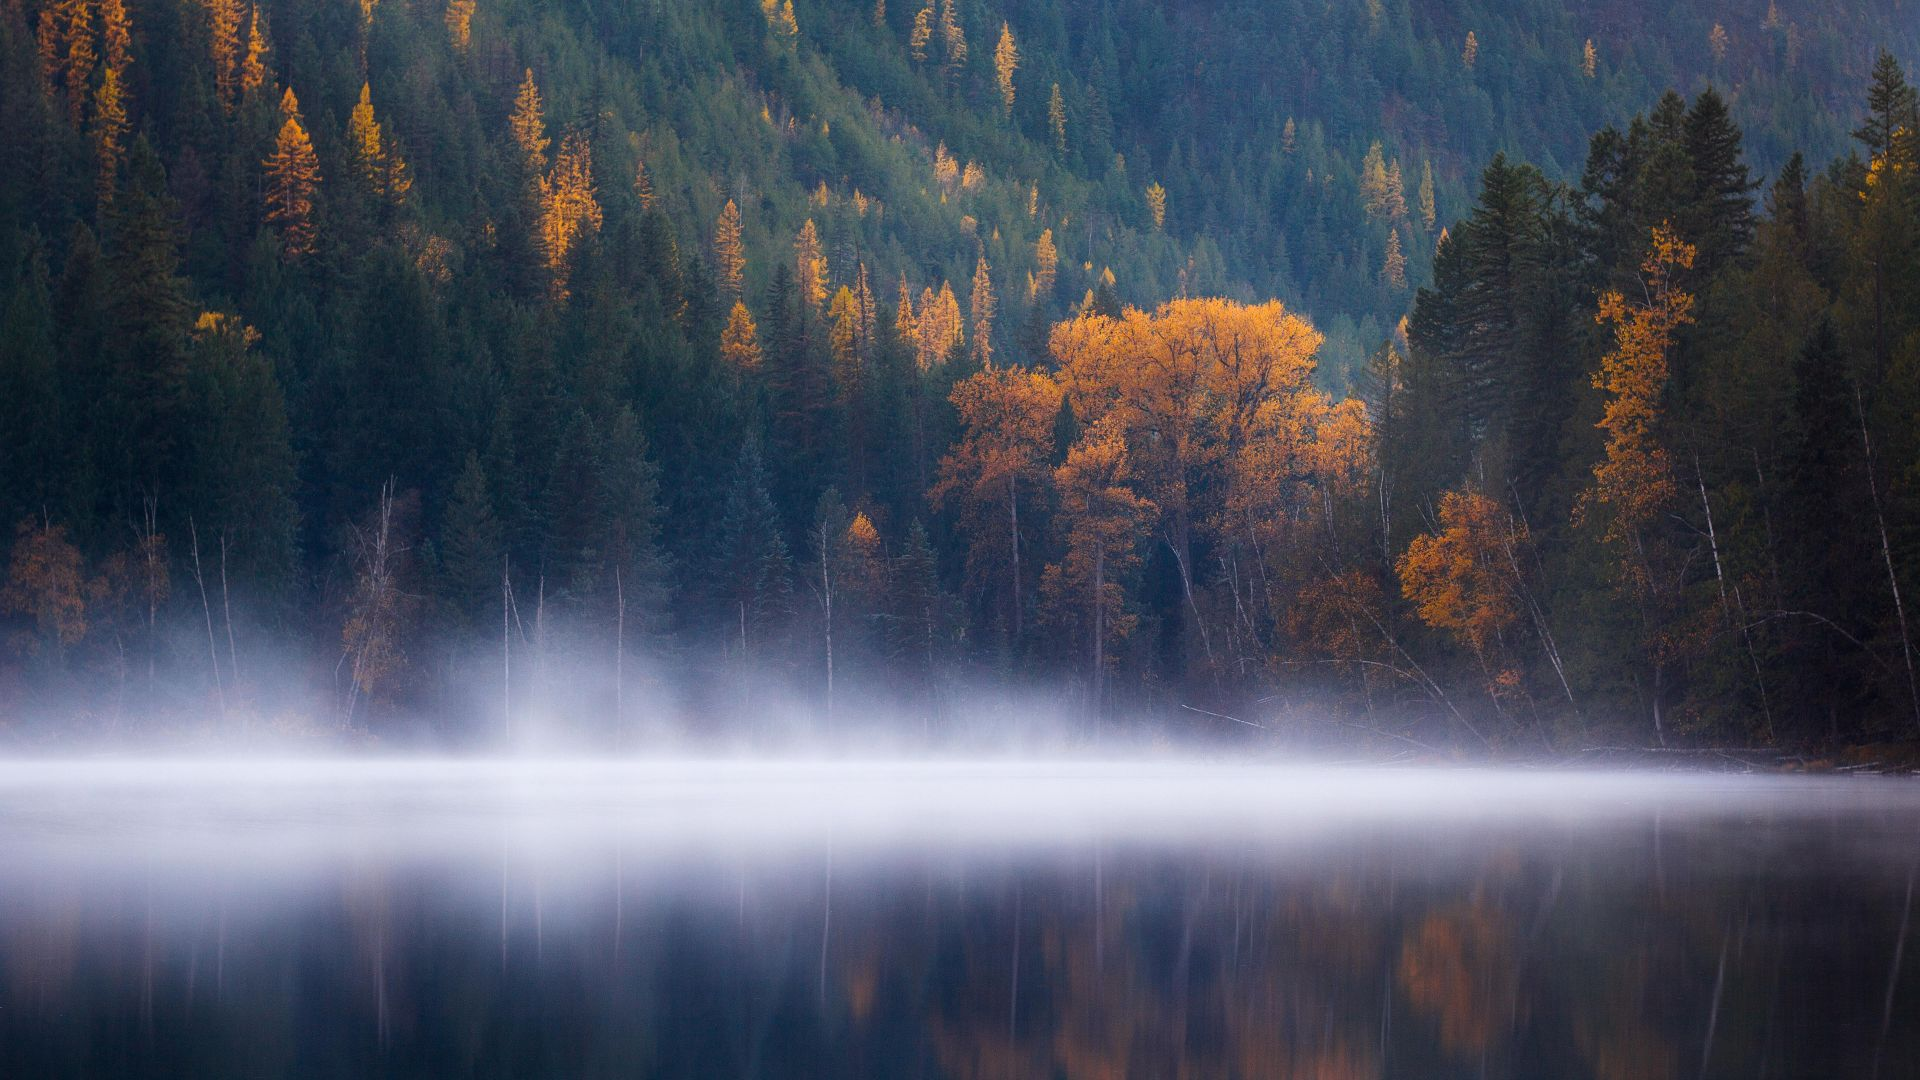 Echo Lake, forest, trees, fog, Columbia, autumn, 5k (horizontal)